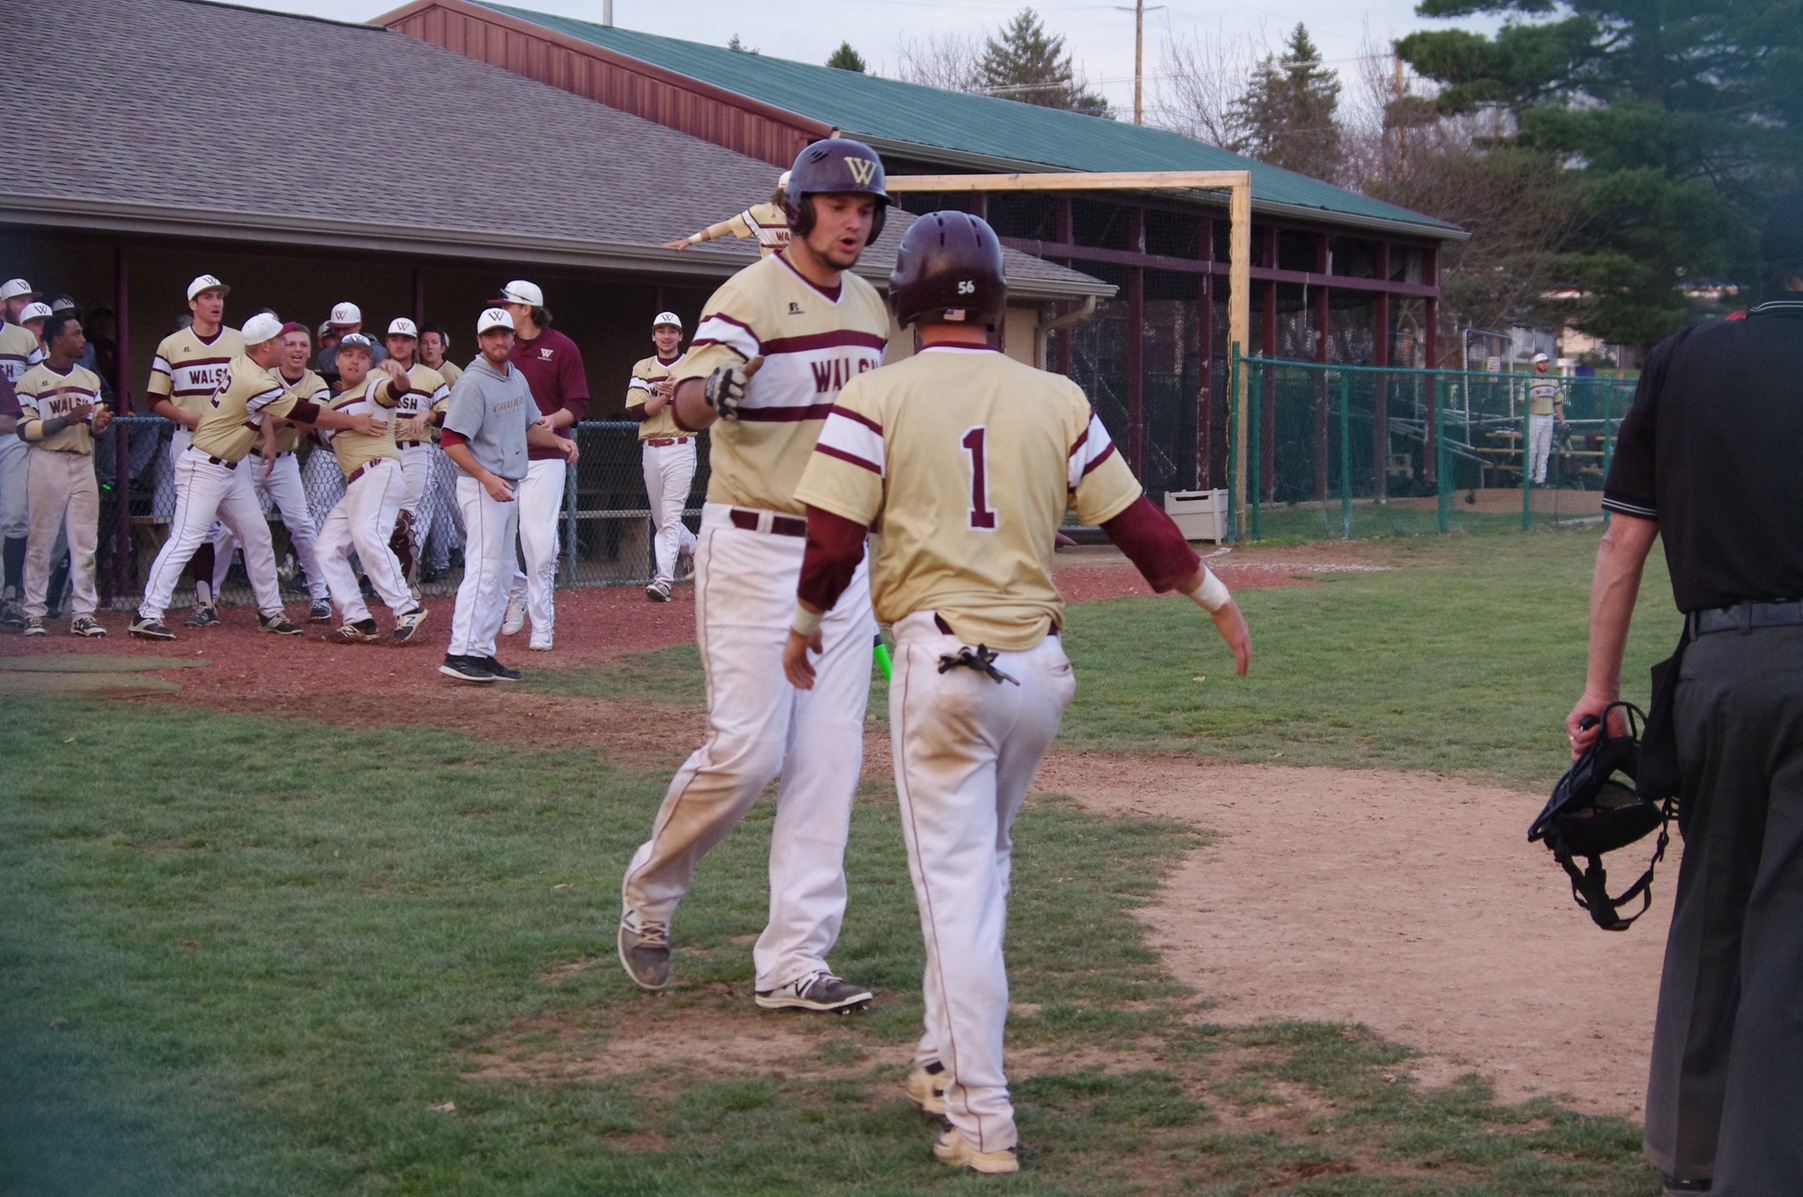 Stalnaker's Walk-off Gives Walsh Series Win Over No. 13 Grand Valley